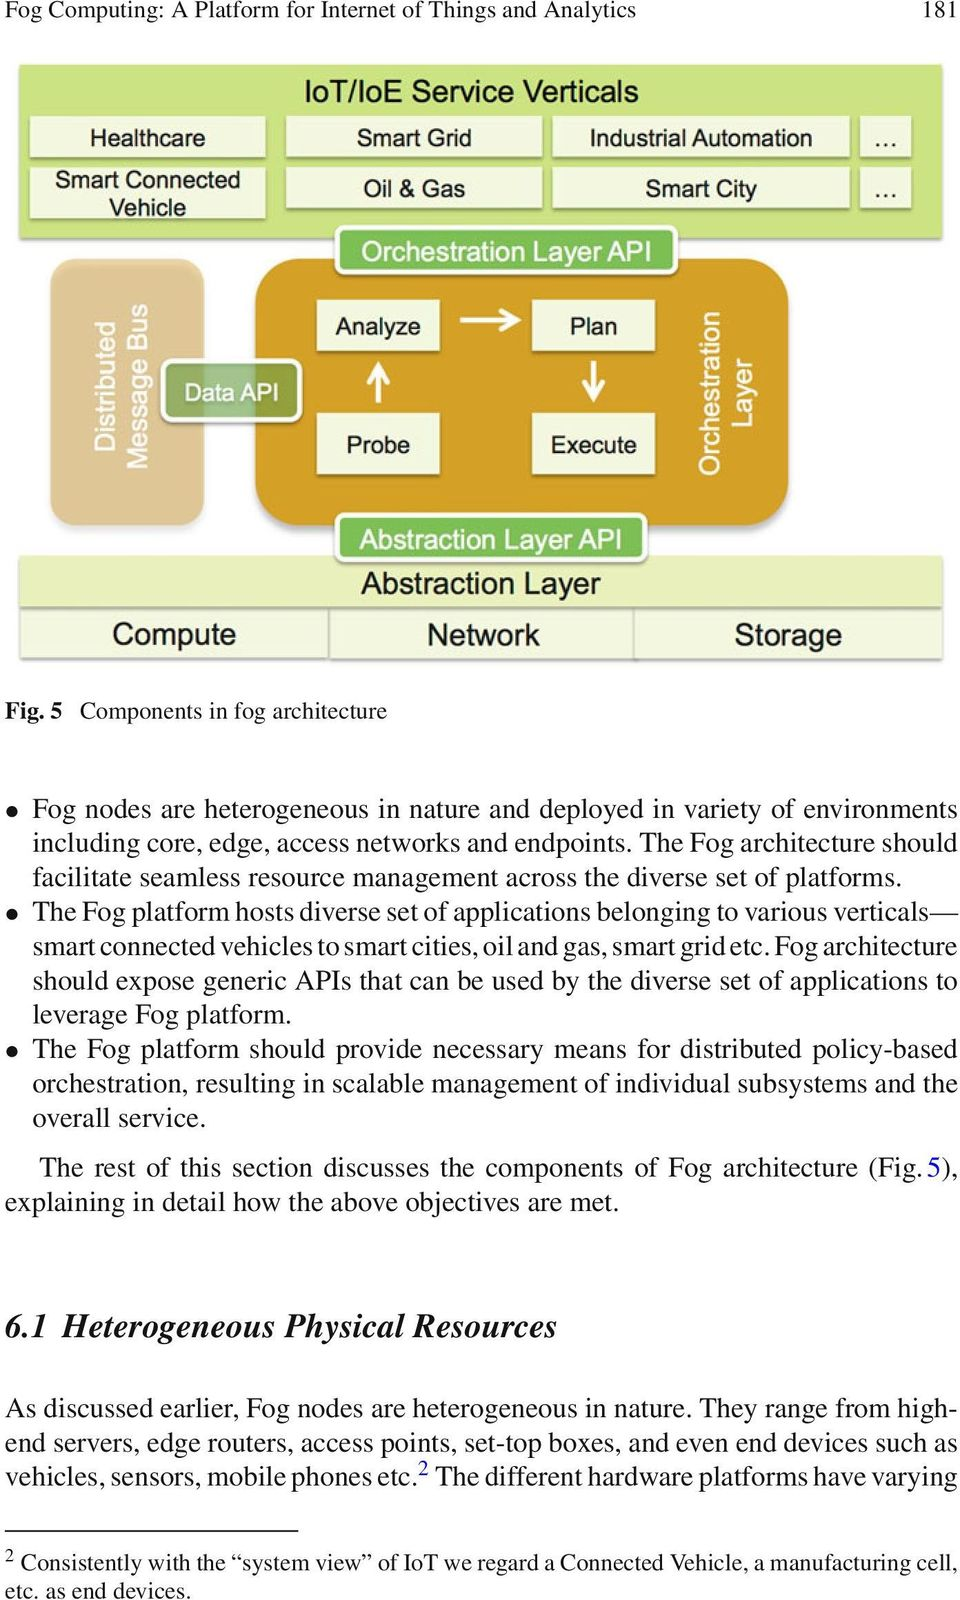 The Fog architecture should facilitate seamless resource management across the diverse set of platforms.